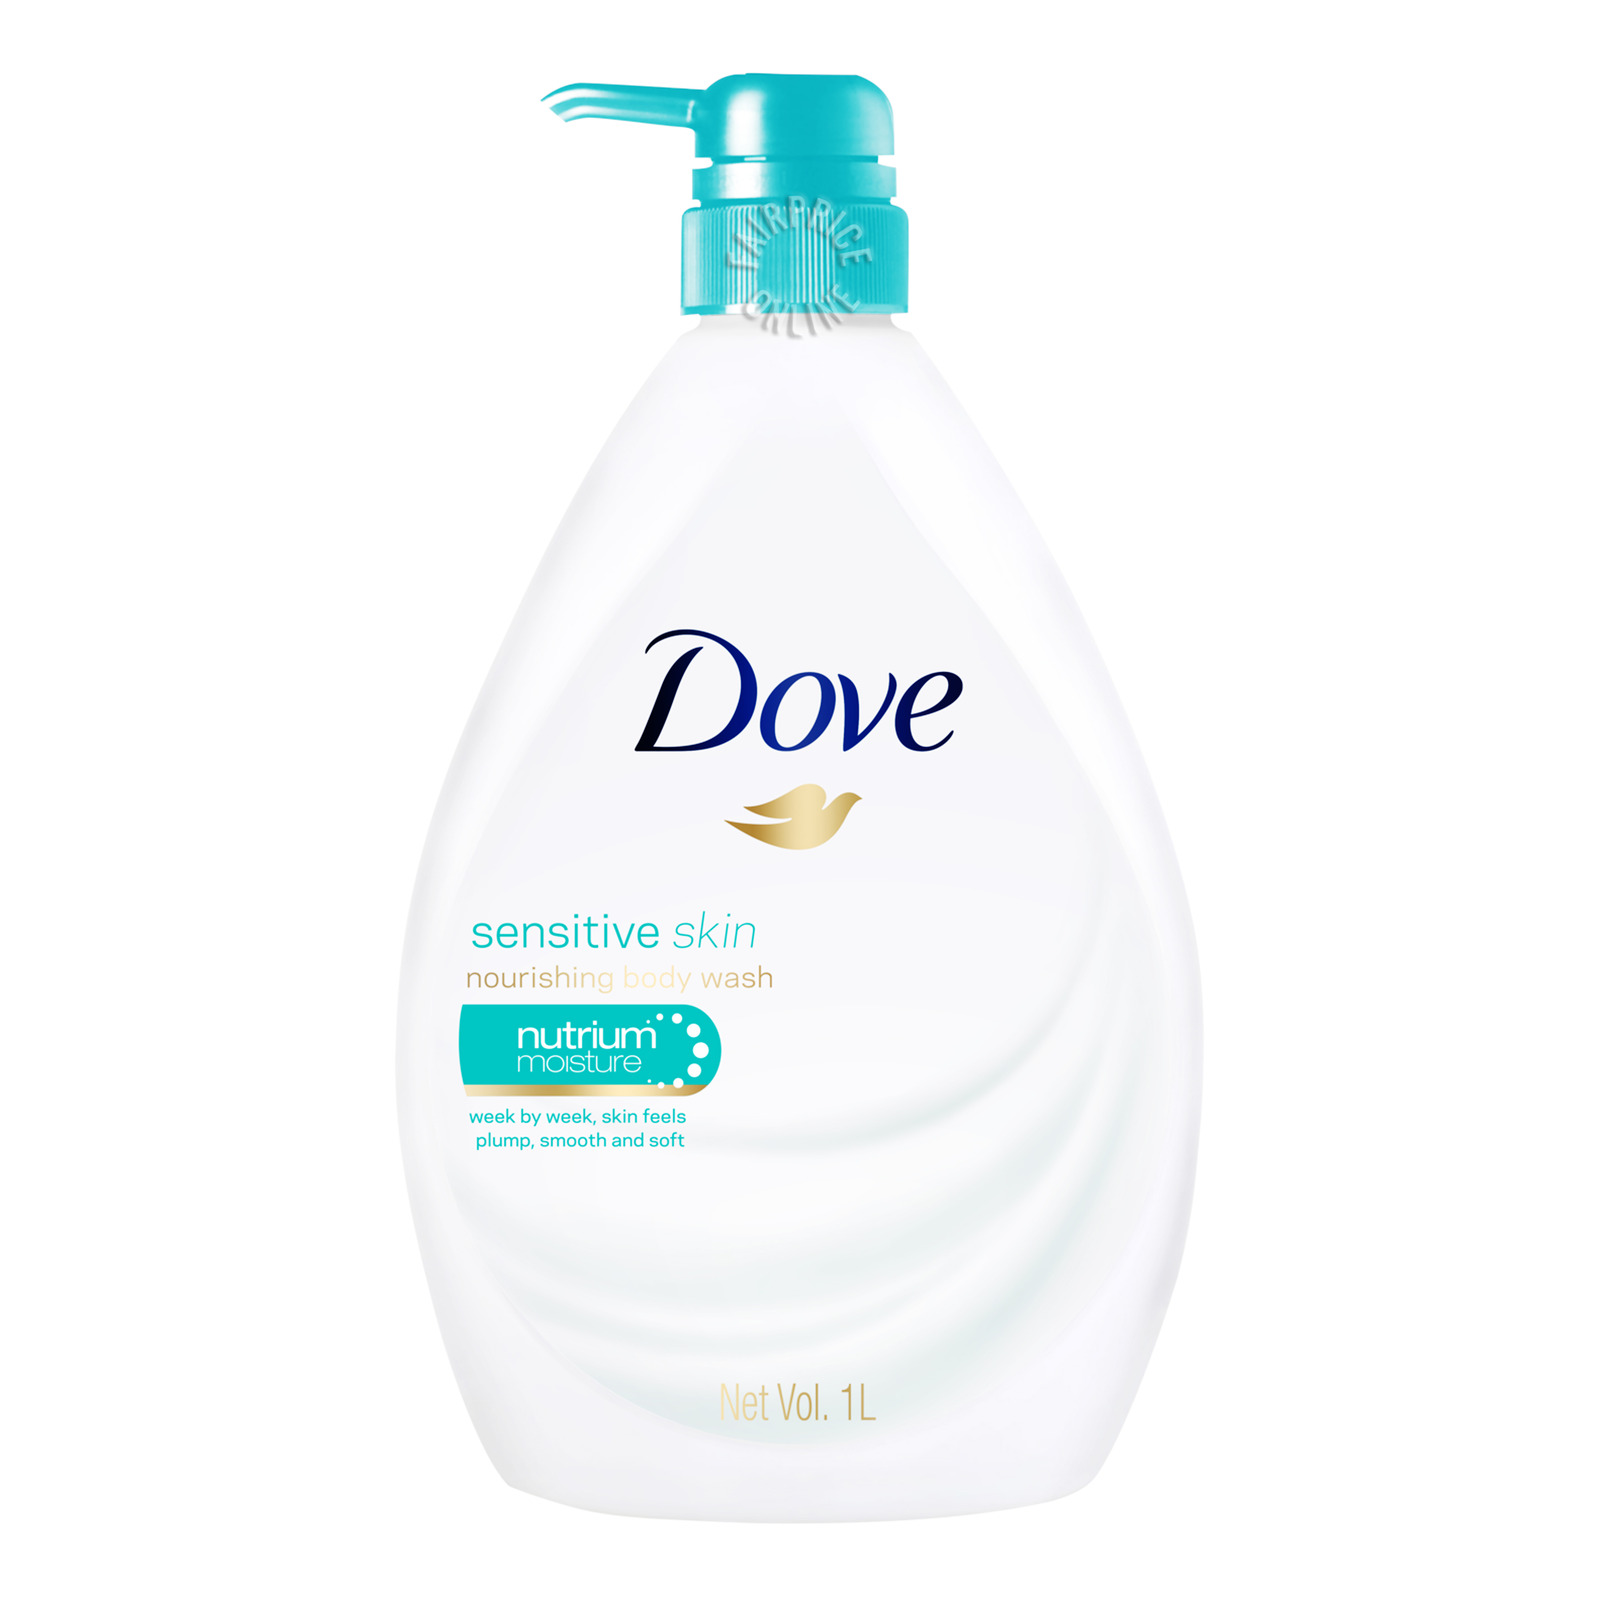 Dove Sensitive Skin Nourishing Body Wash